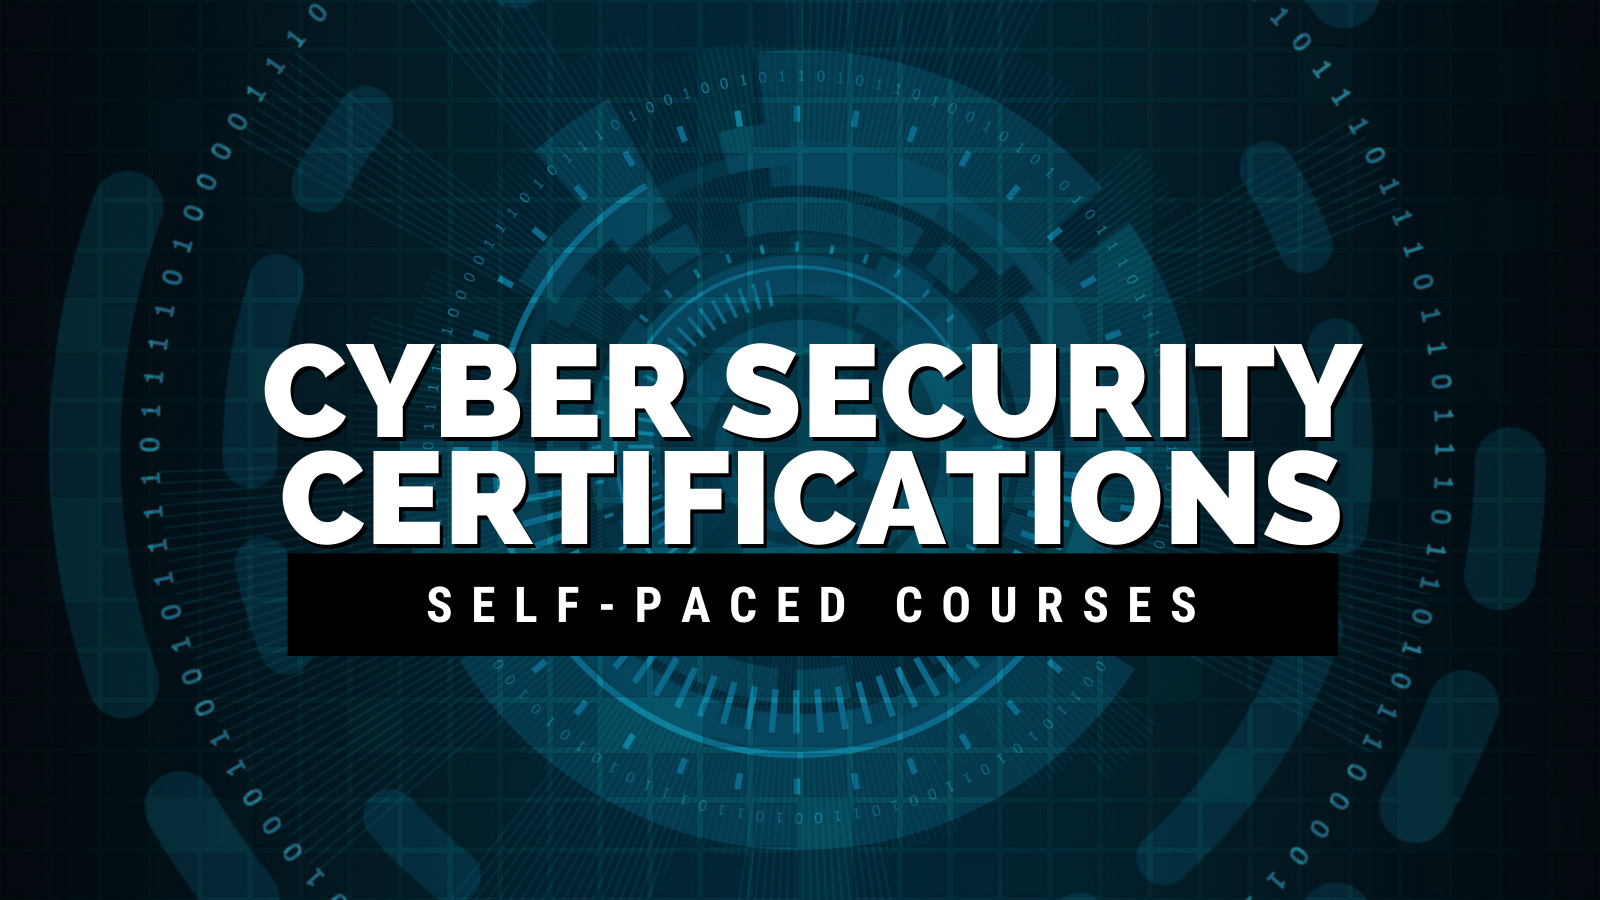 Cyber Security Certification Course Self Paced